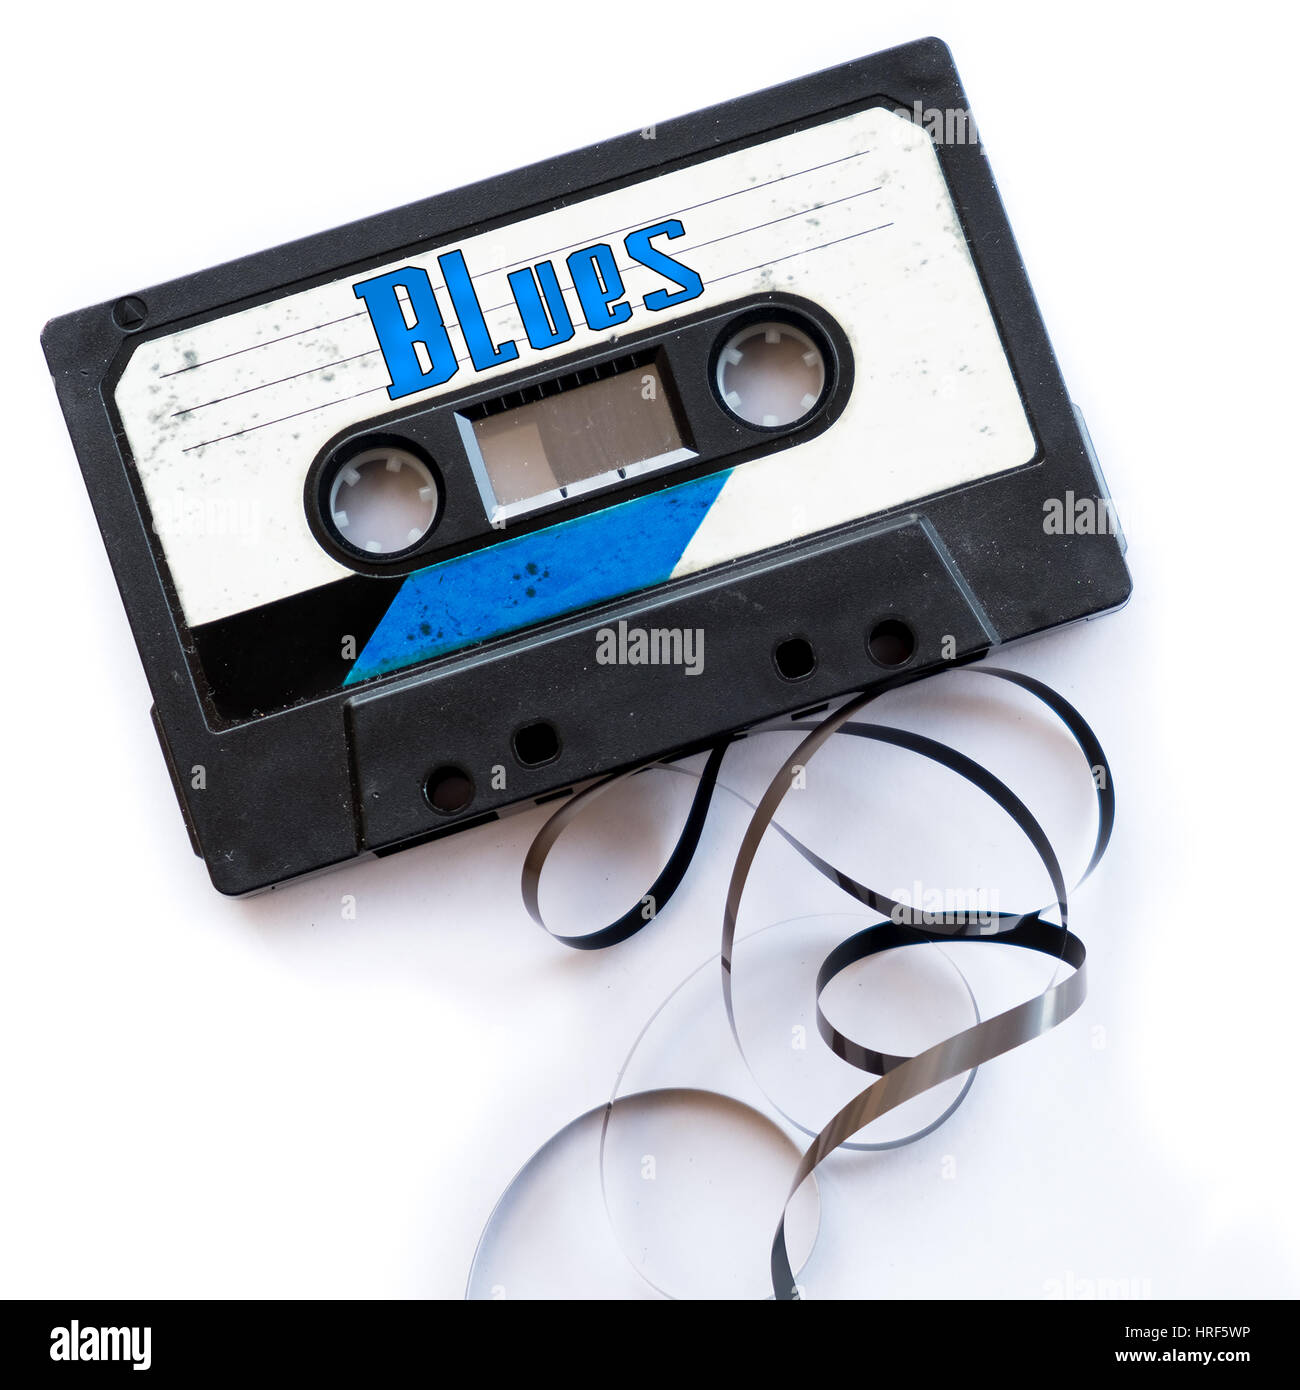 blues musical genres audio tape label - Stock Image